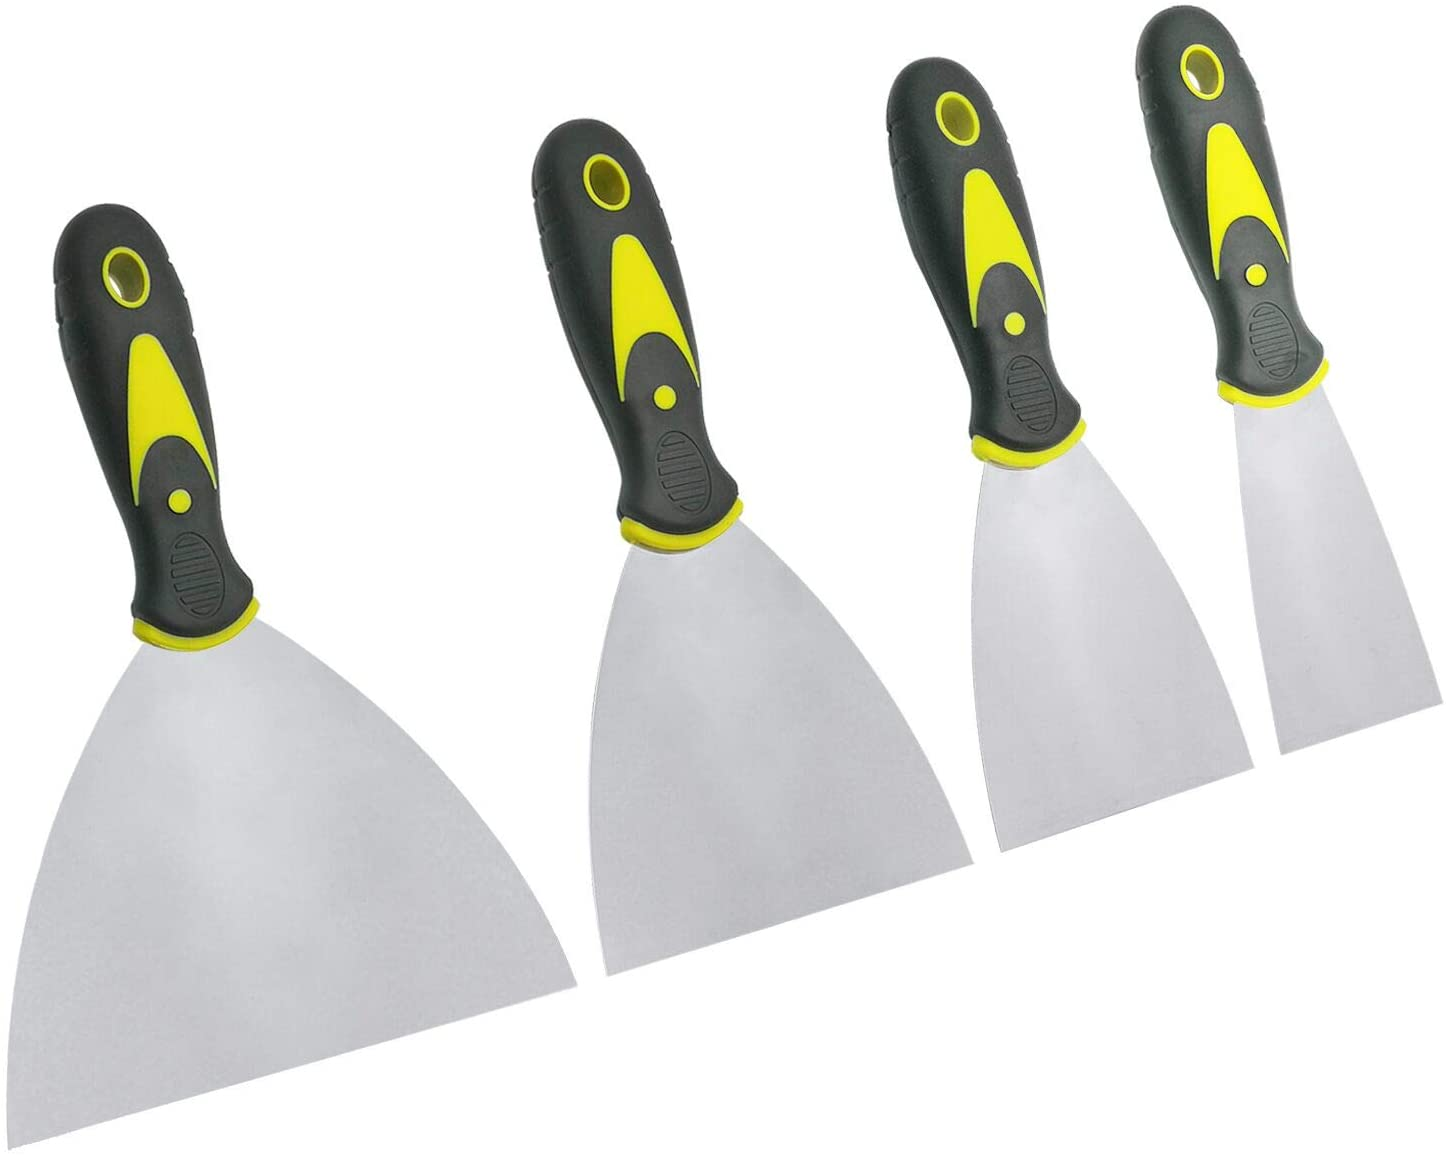 Listenman Putty Knife Set, 4 PCS (2, 3, 4, 6 inch) Spackle Putty Knives, Metal Scrapers, Putty Scrapers for Drywall, Putty, Decals, Wallpaper, Baking, Patching and Painting - -